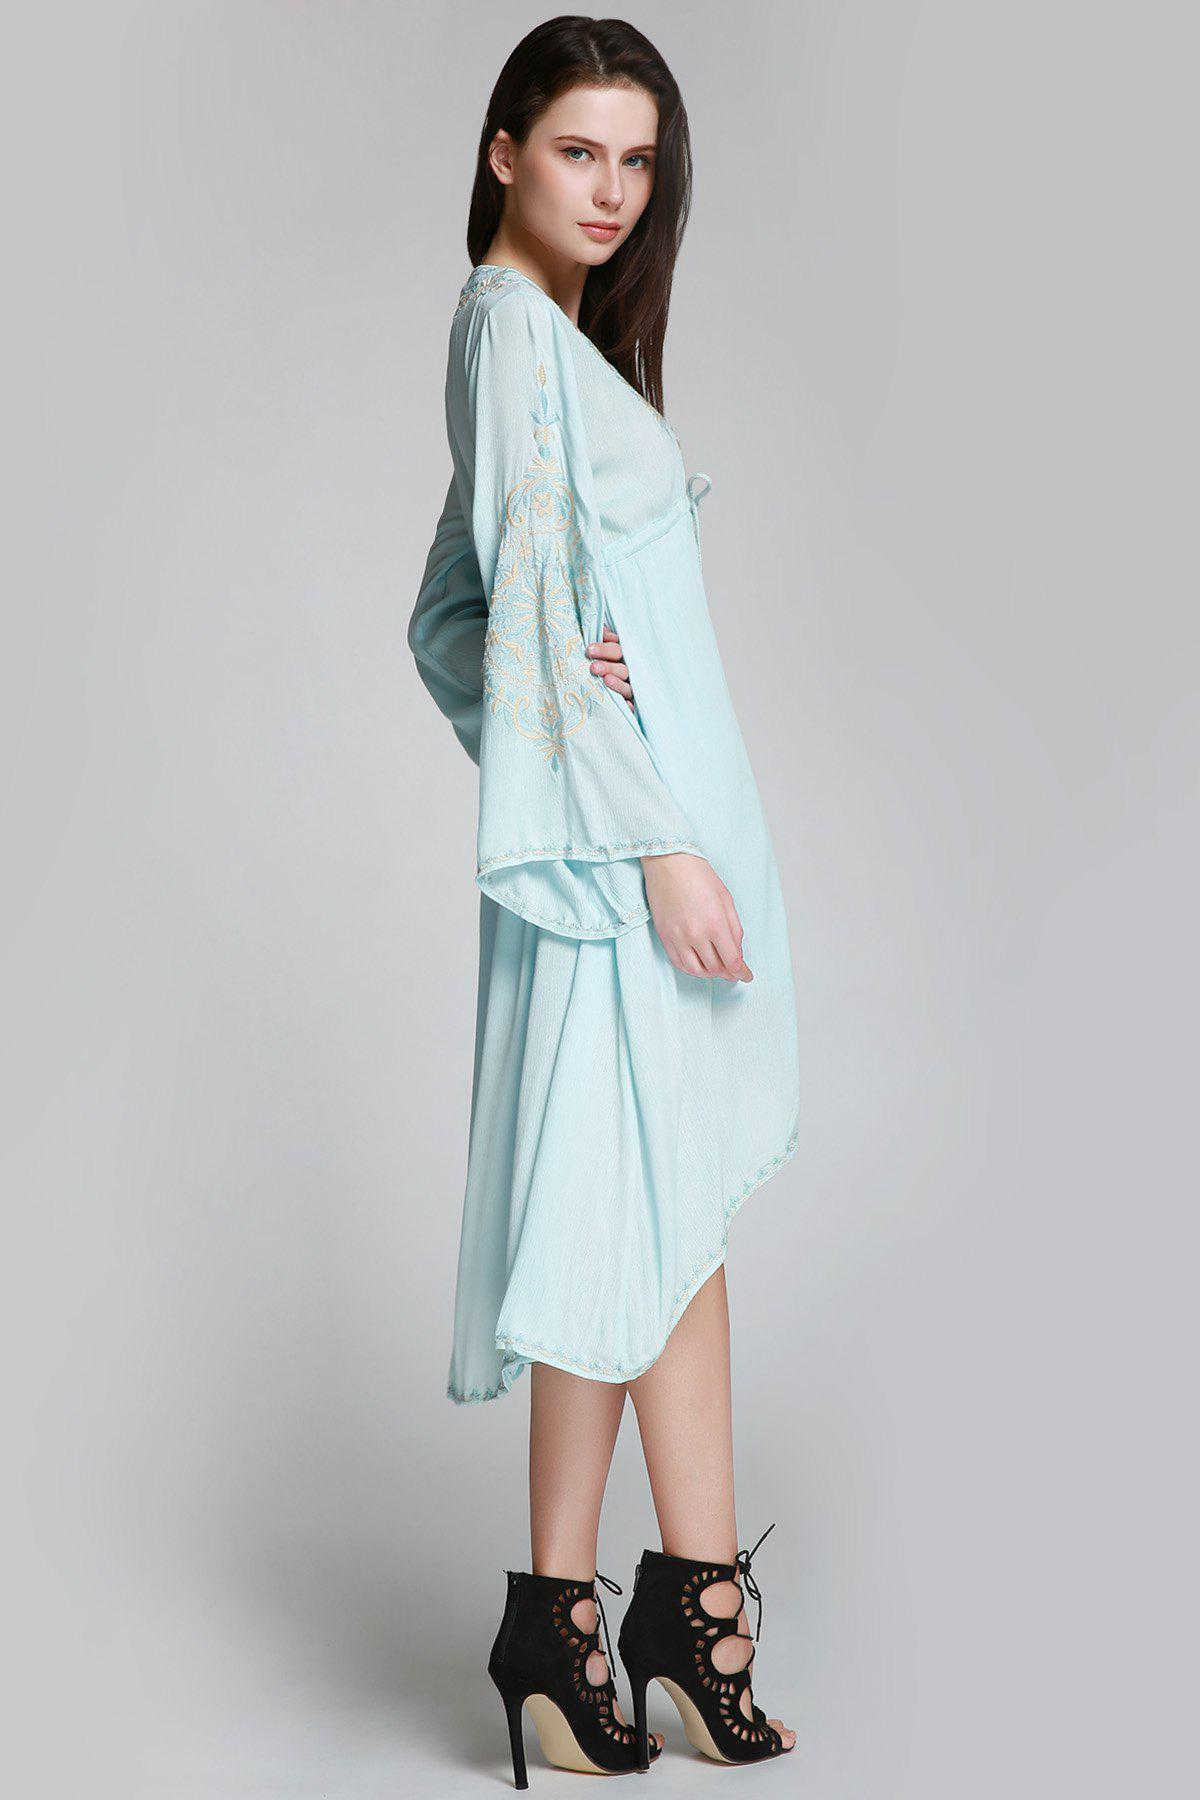 Flare Sleeve Shapeless Embroidered Dress - LIGHT BLUE M